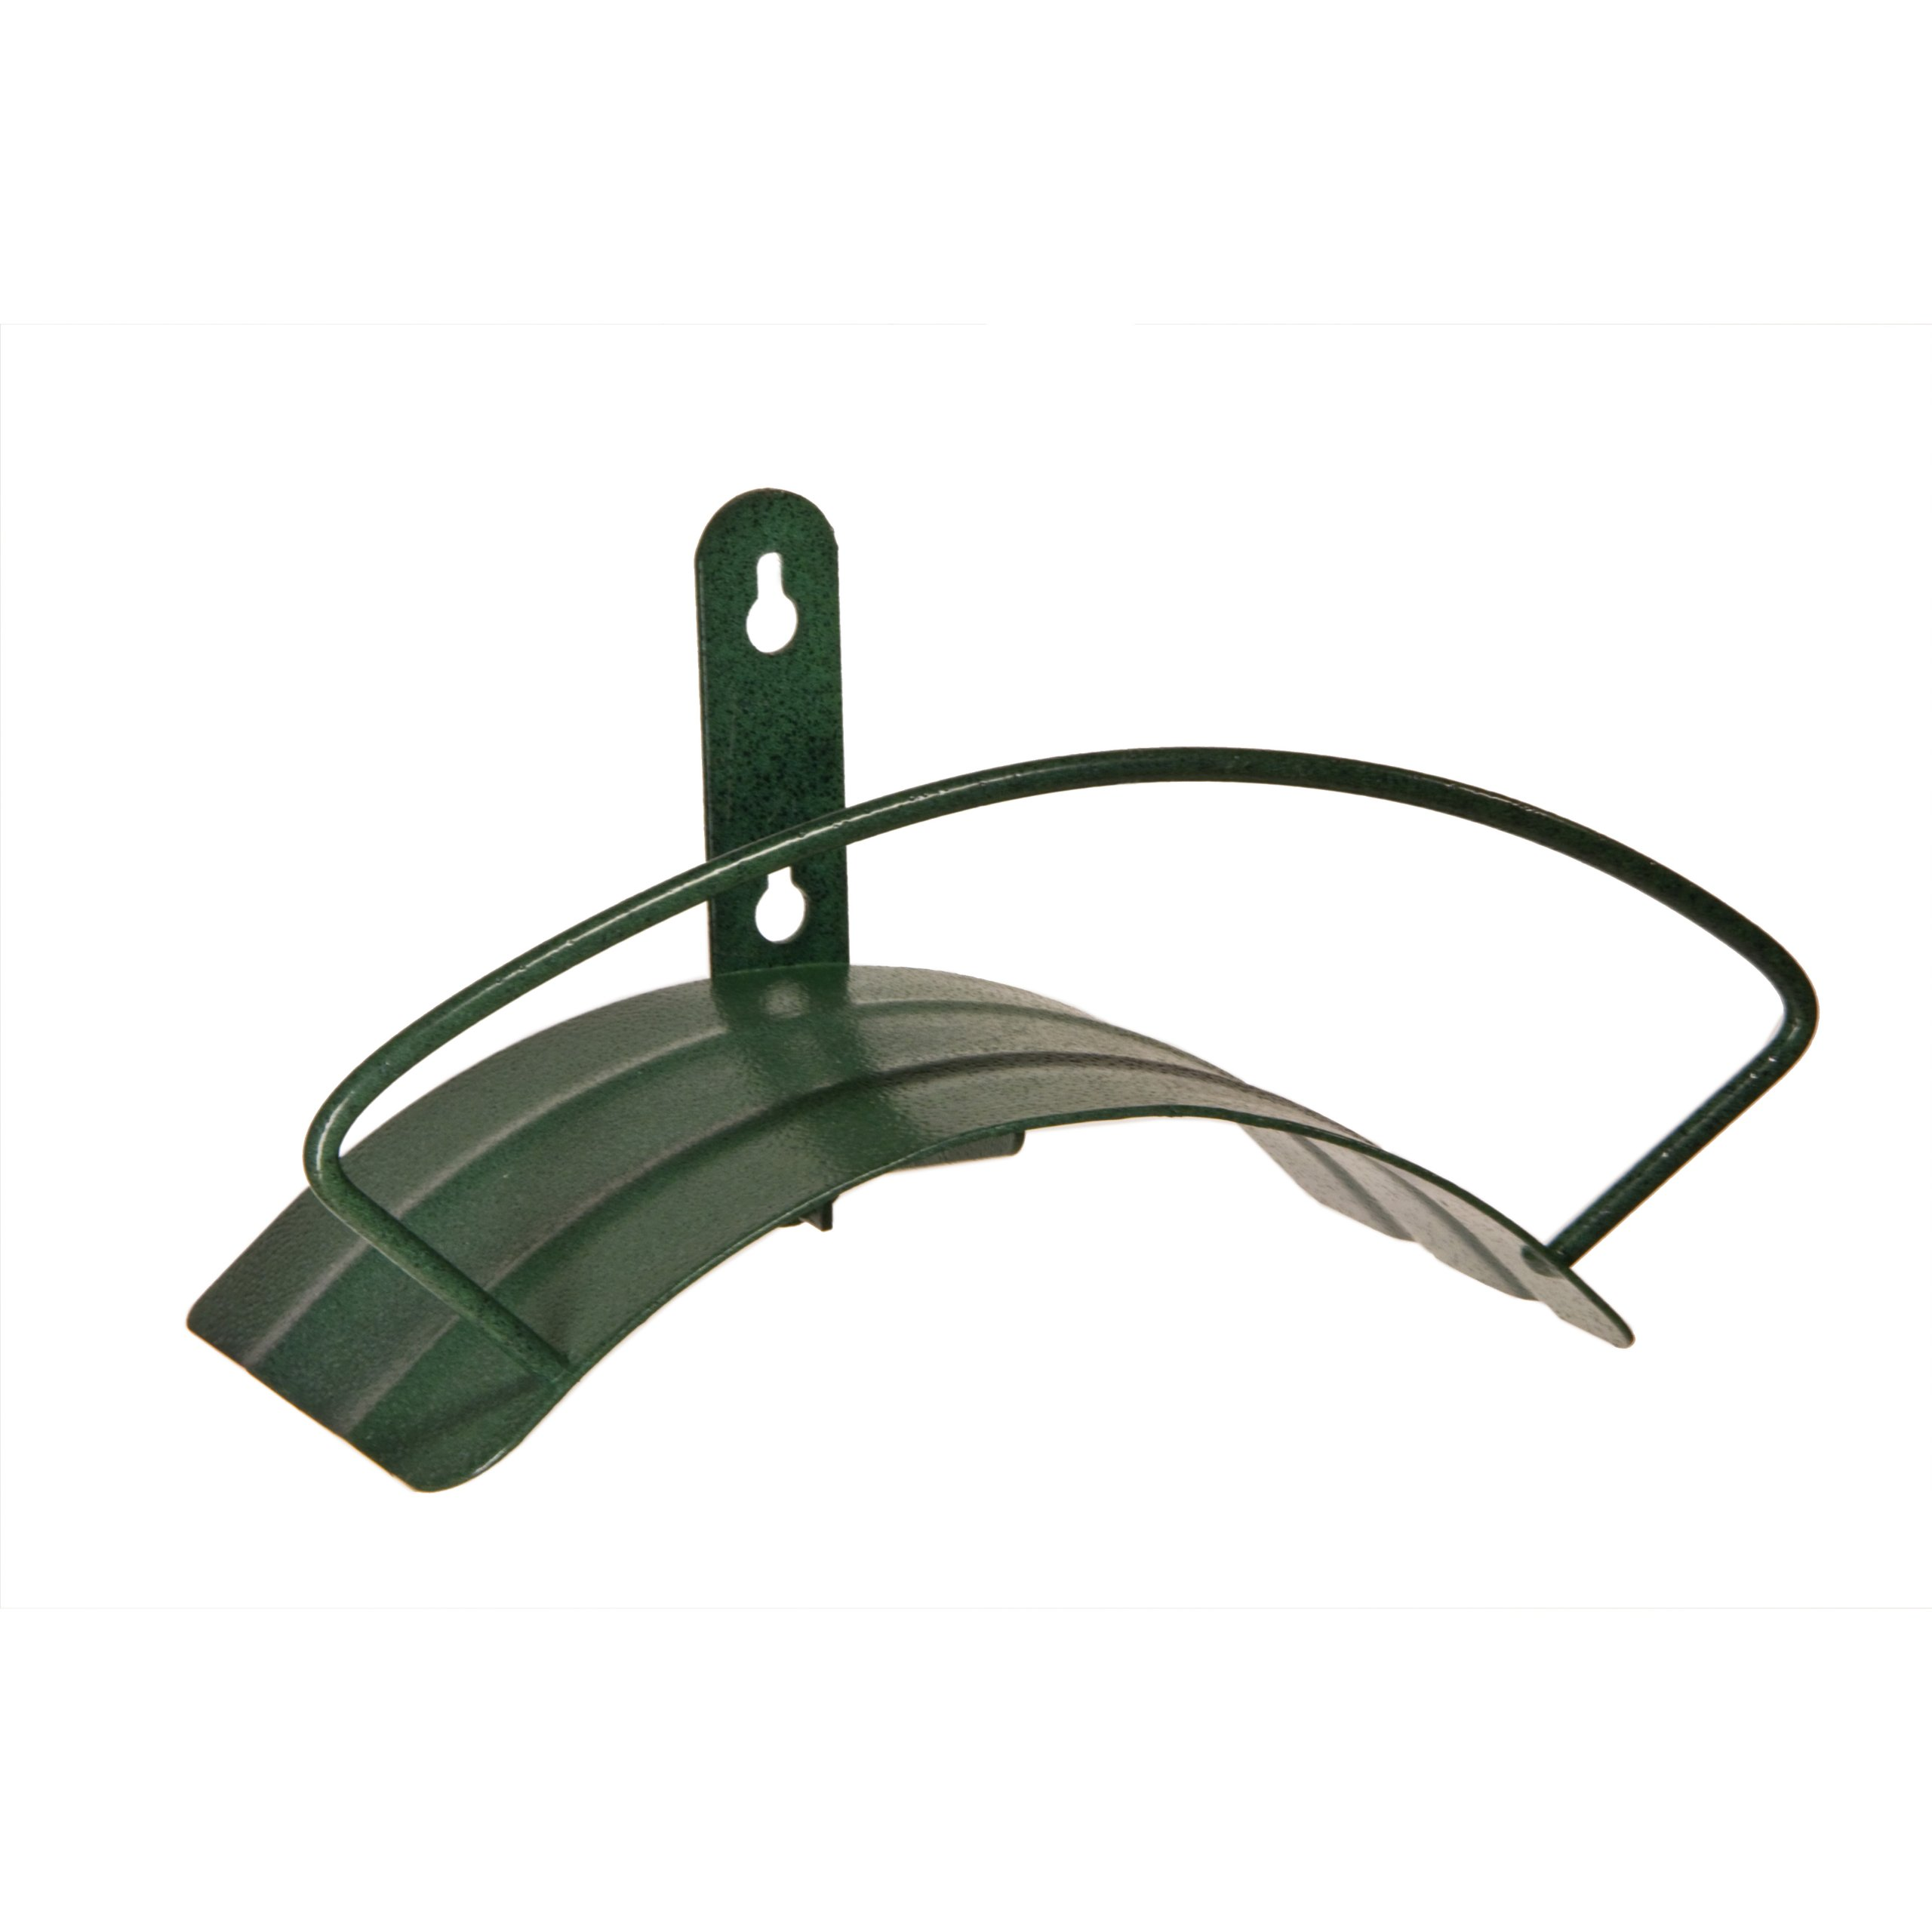 Yard Butler Deluxe Heavy Duty Wall Mount Hose Hanger Easily Holds 100' Of 5/8' Hose Solid Steel Extra Bracing And Patented Design In and DECORATIVE DESIGNS IHCWM-1 Textured Forest Green by Yard Butler (Image #1)